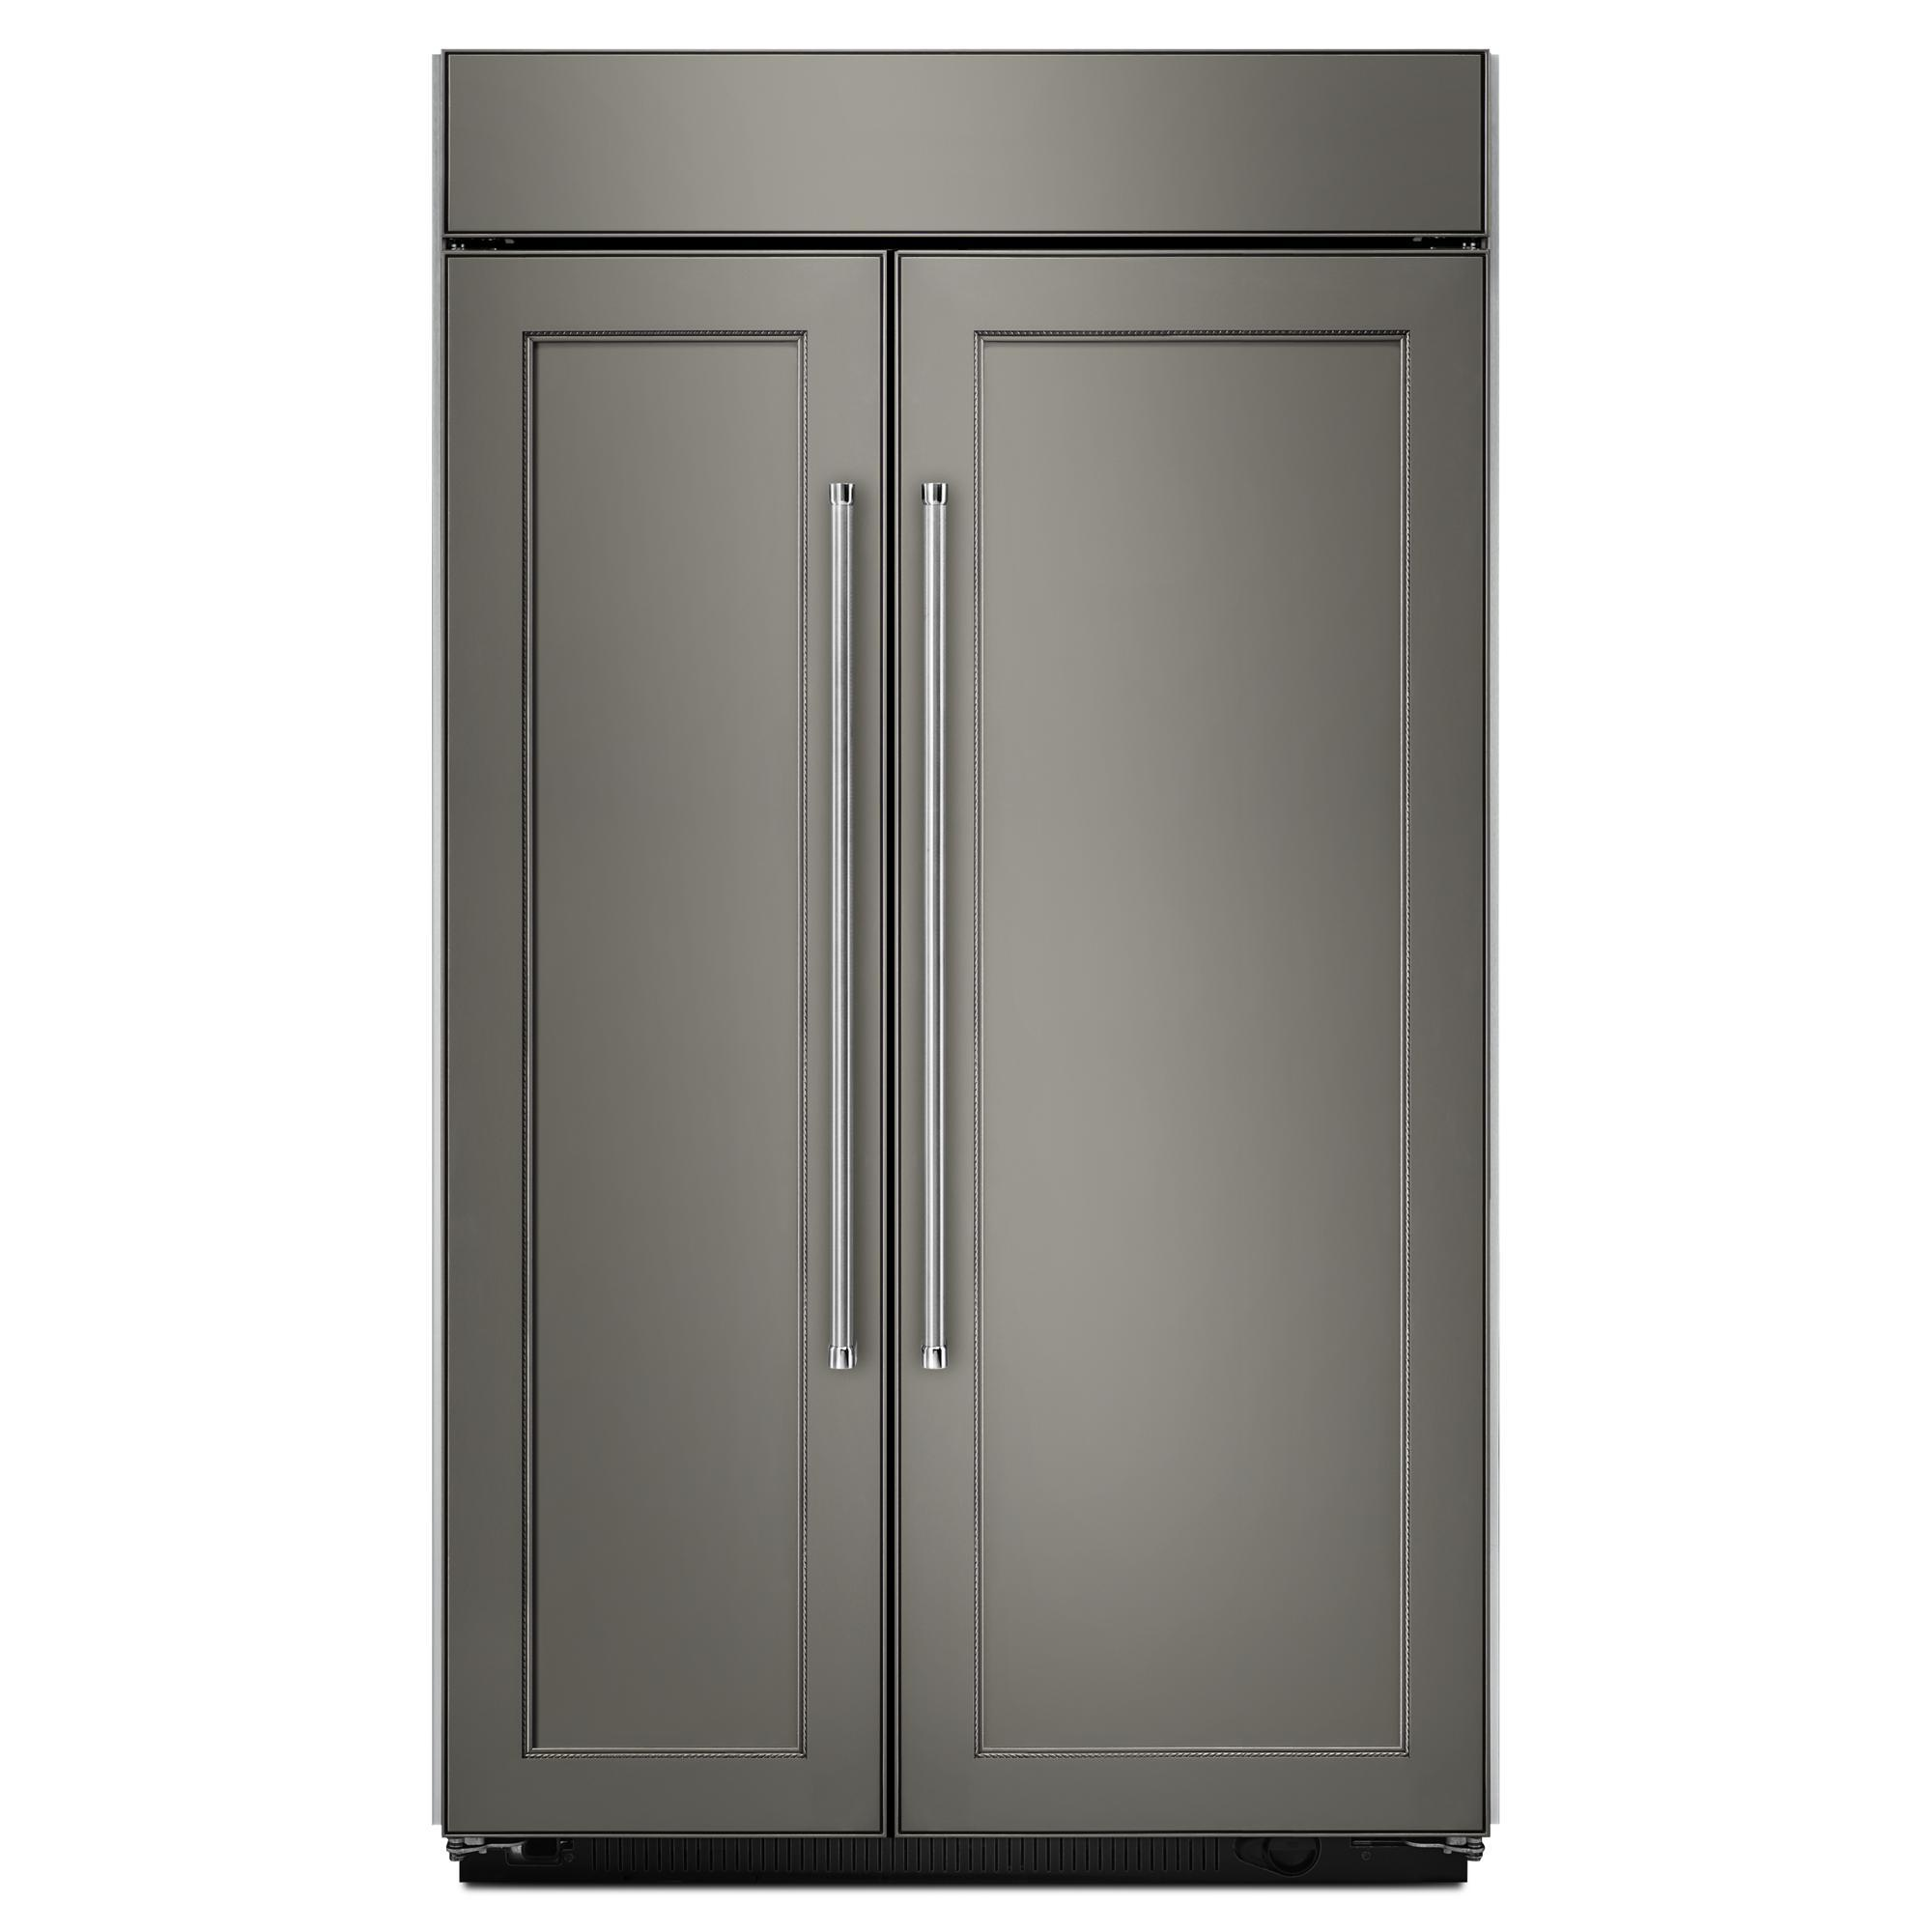 Shop Kitchenaid 24 8 Cu Ft Side By Side Refrigerator With: Side By Side Refrigerators